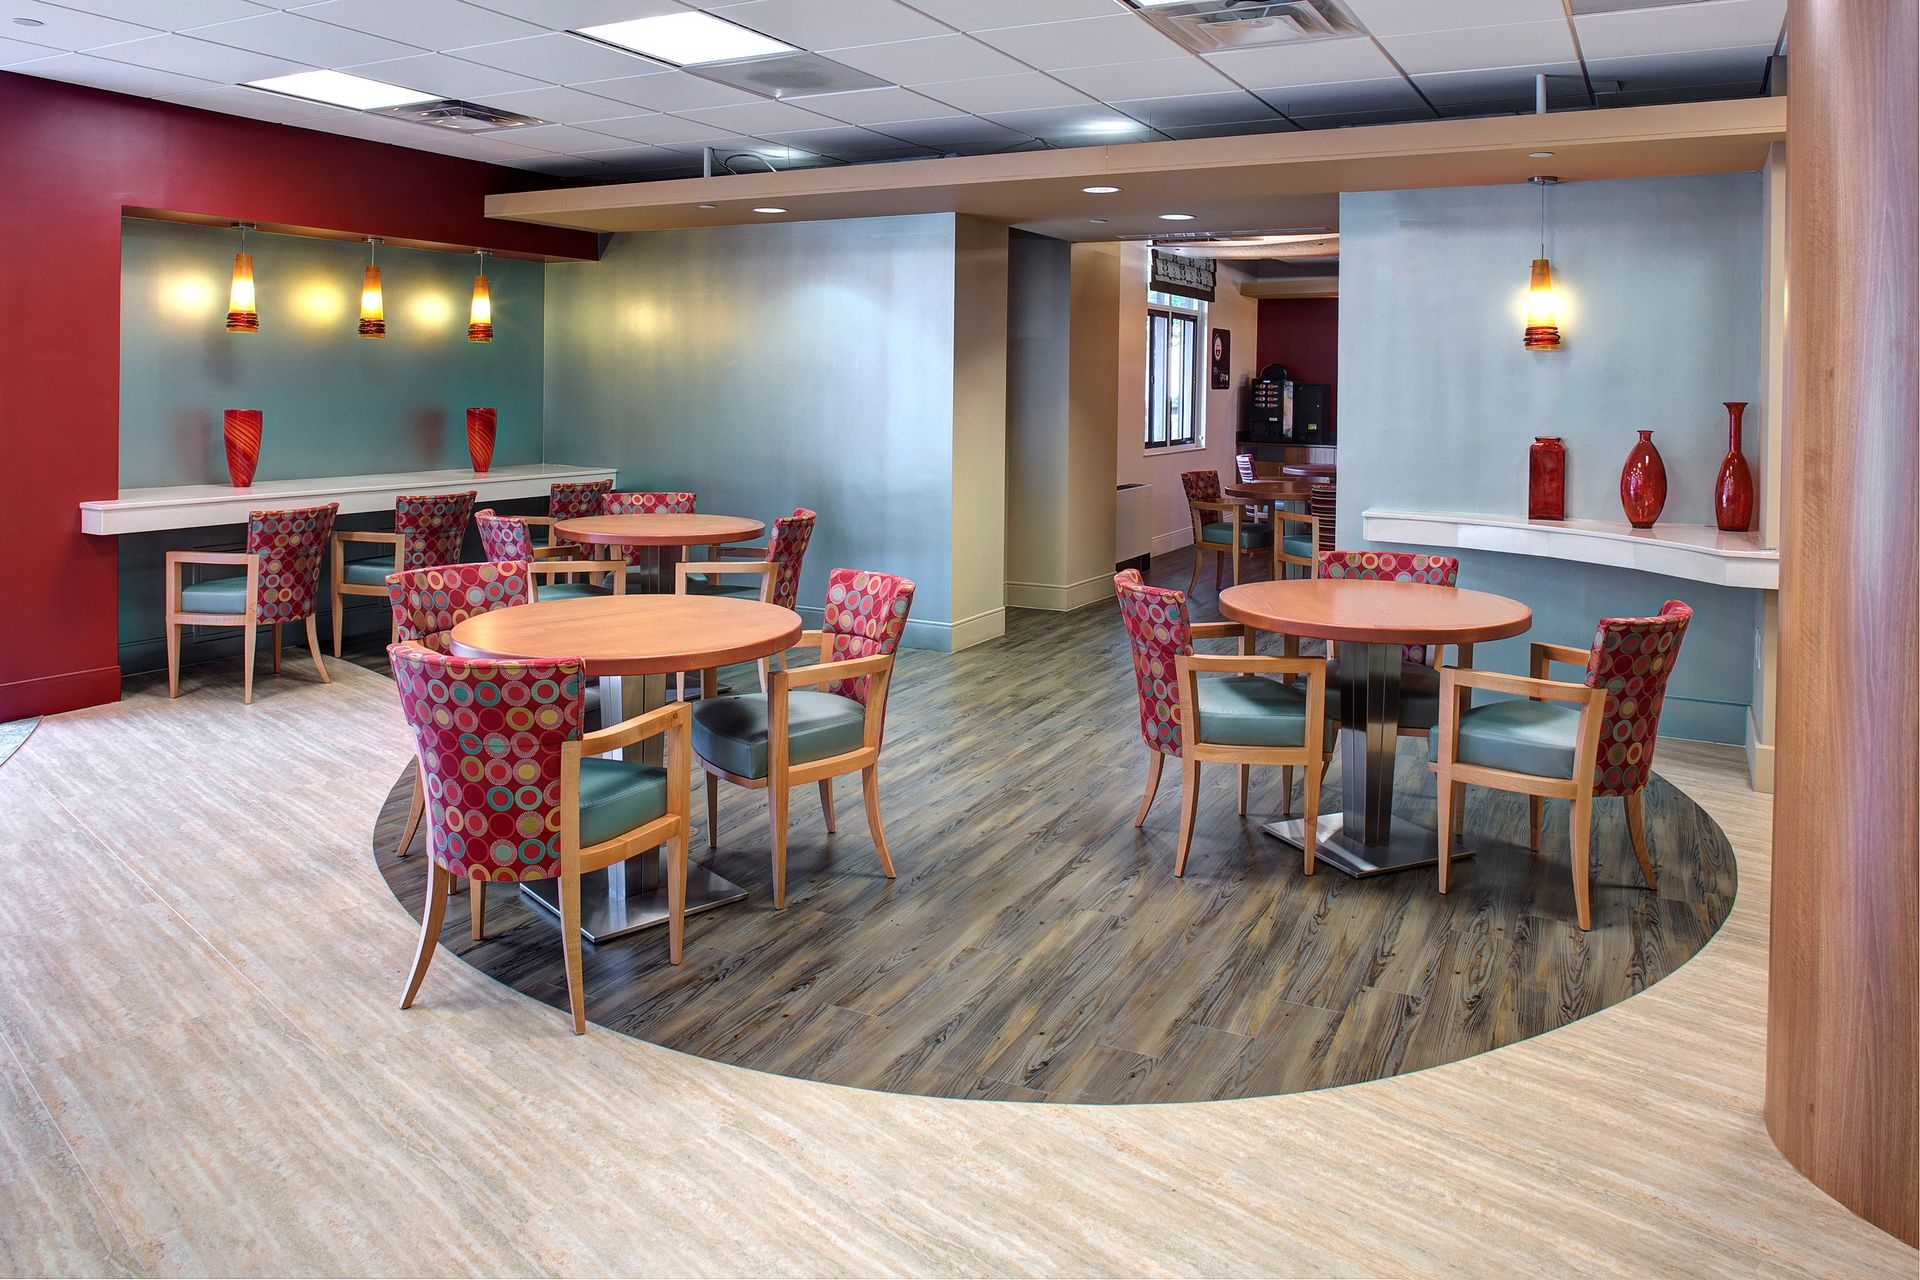 Wasserman Residence Physical Therapy/Rehabilitation Center Senior Living Healthcare Design Cafe Seating